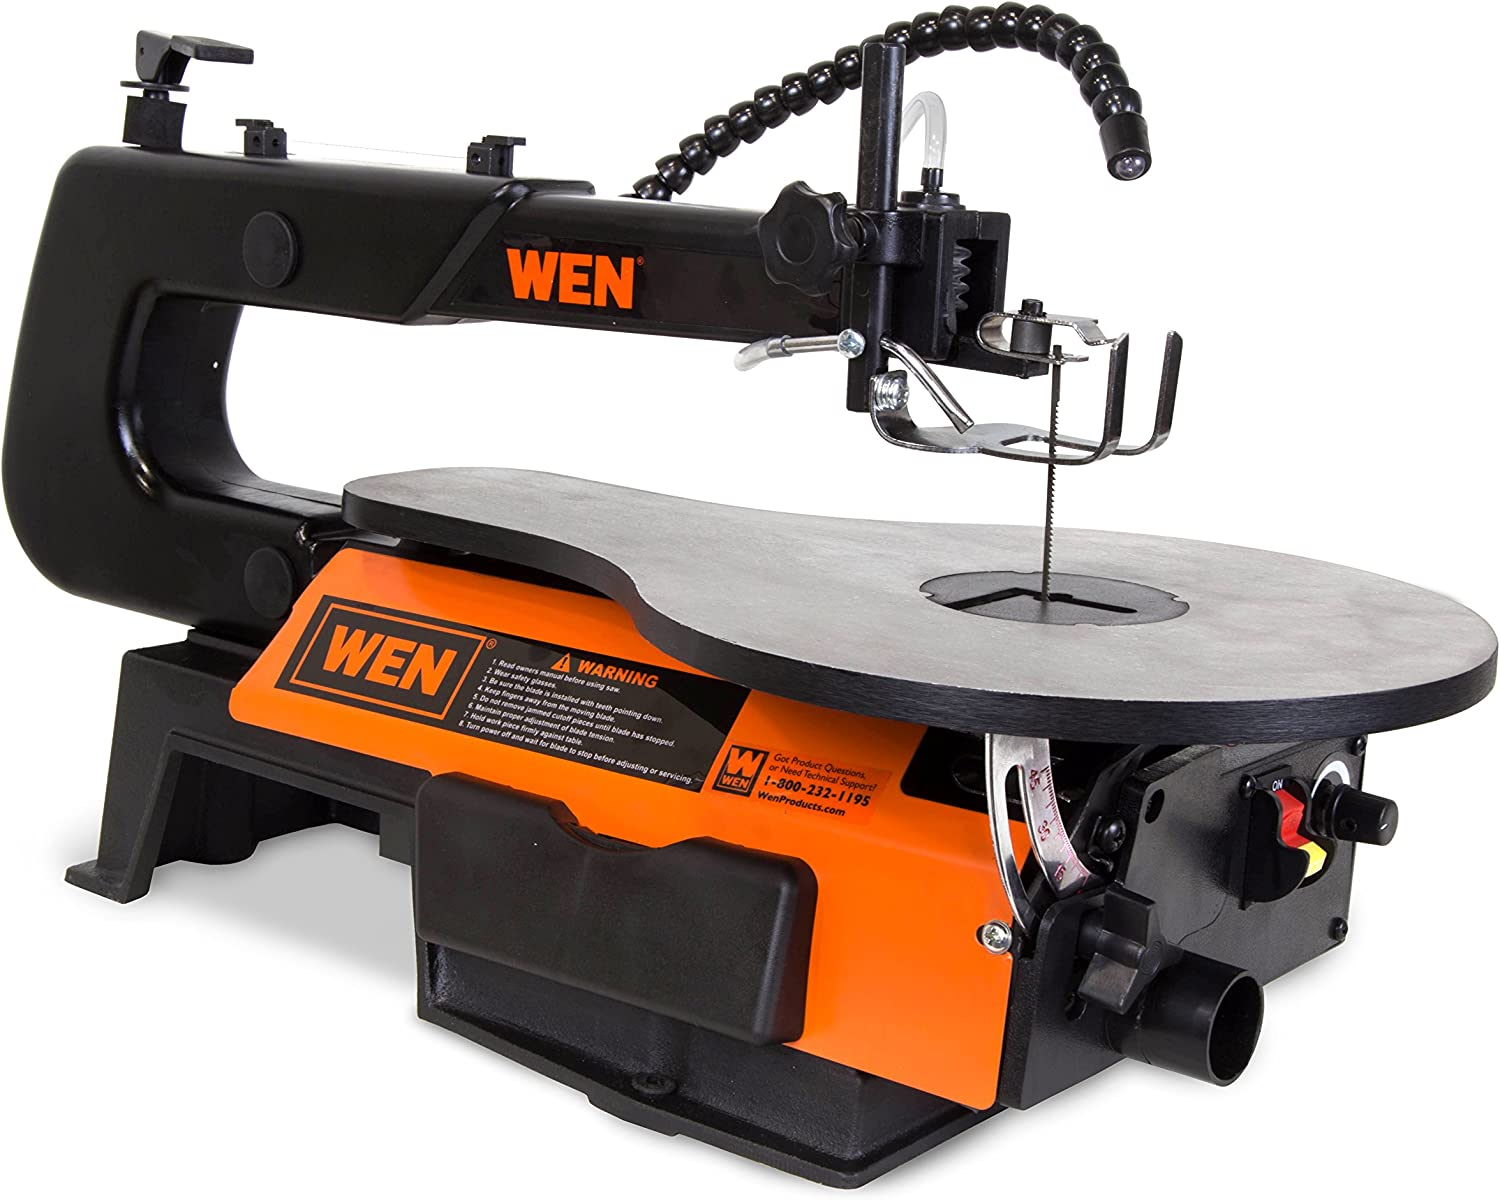 WEN 3921 16-Inch Two-Direction Variable Speed Scroll Saw – Best Corded-Electric Scroll Saw